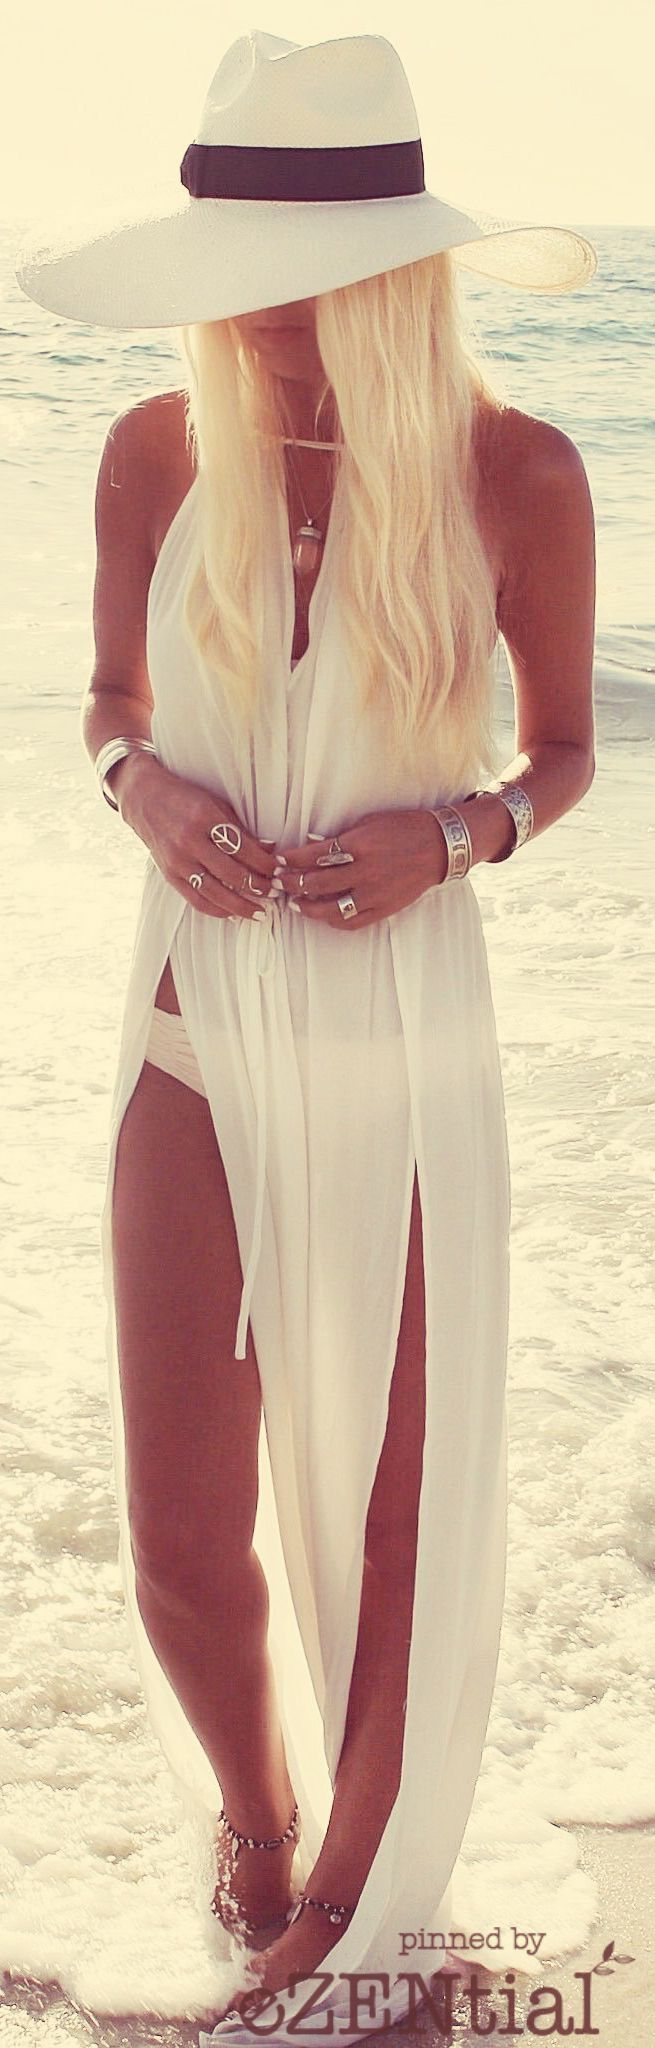 Floor length beach kimono for pairing with bikini or bathing suit For more great pins go to @KaseyBelleFox.